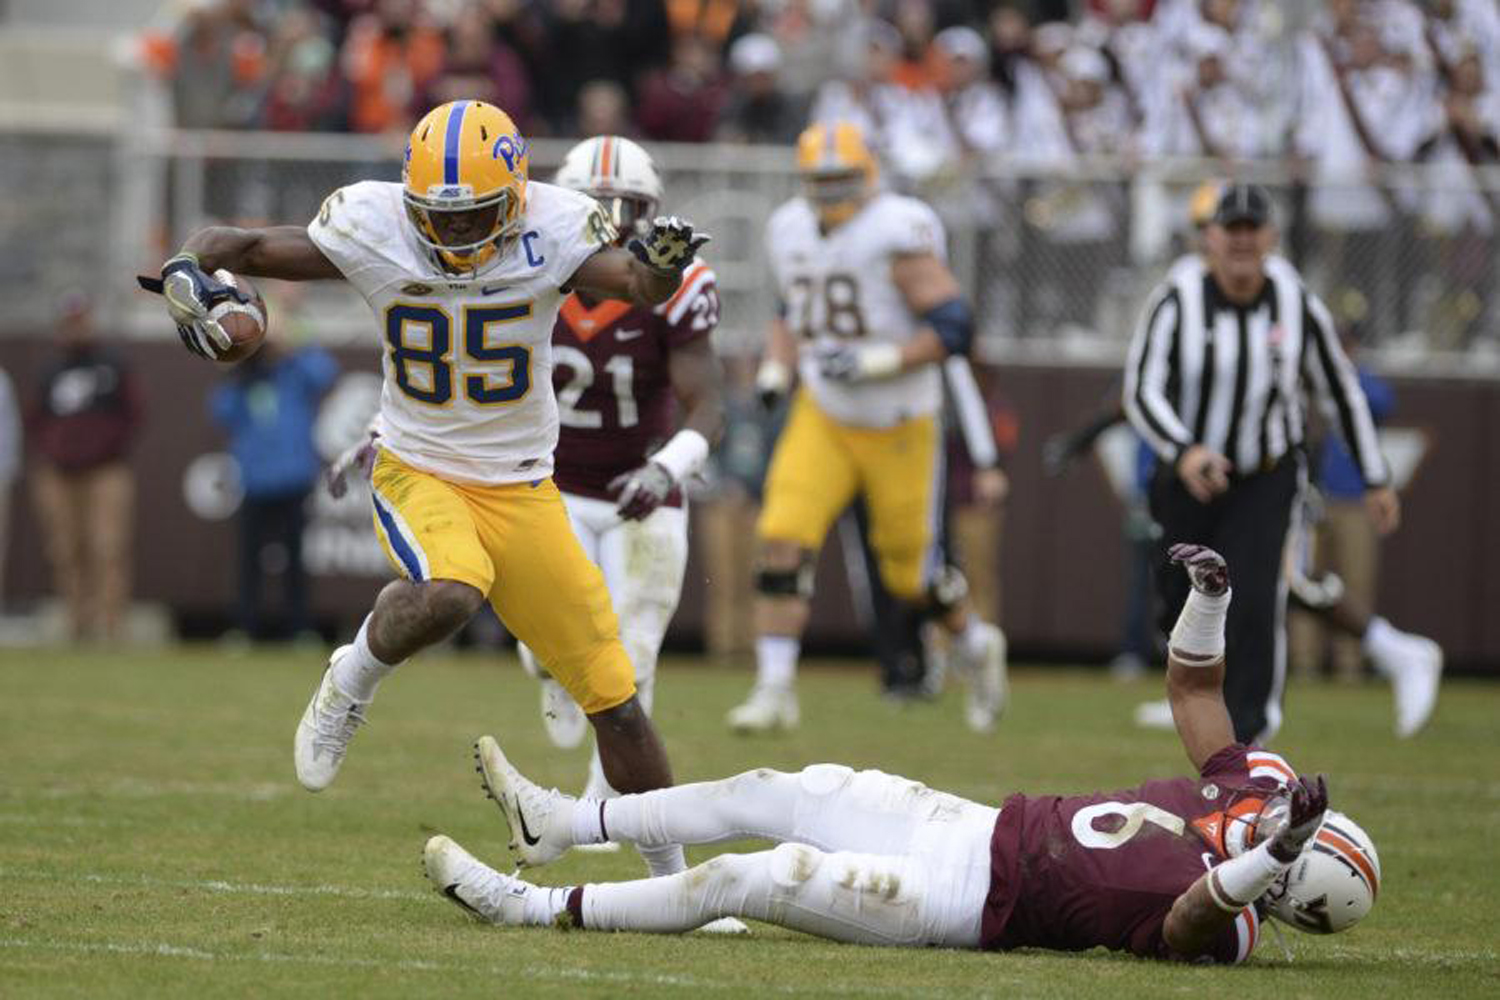 Then Pitt receiver Jester Weah broke a tackle before running to the 1-yard line in the final minutes of the Panthers' loss to Virginia Tech in 2017.